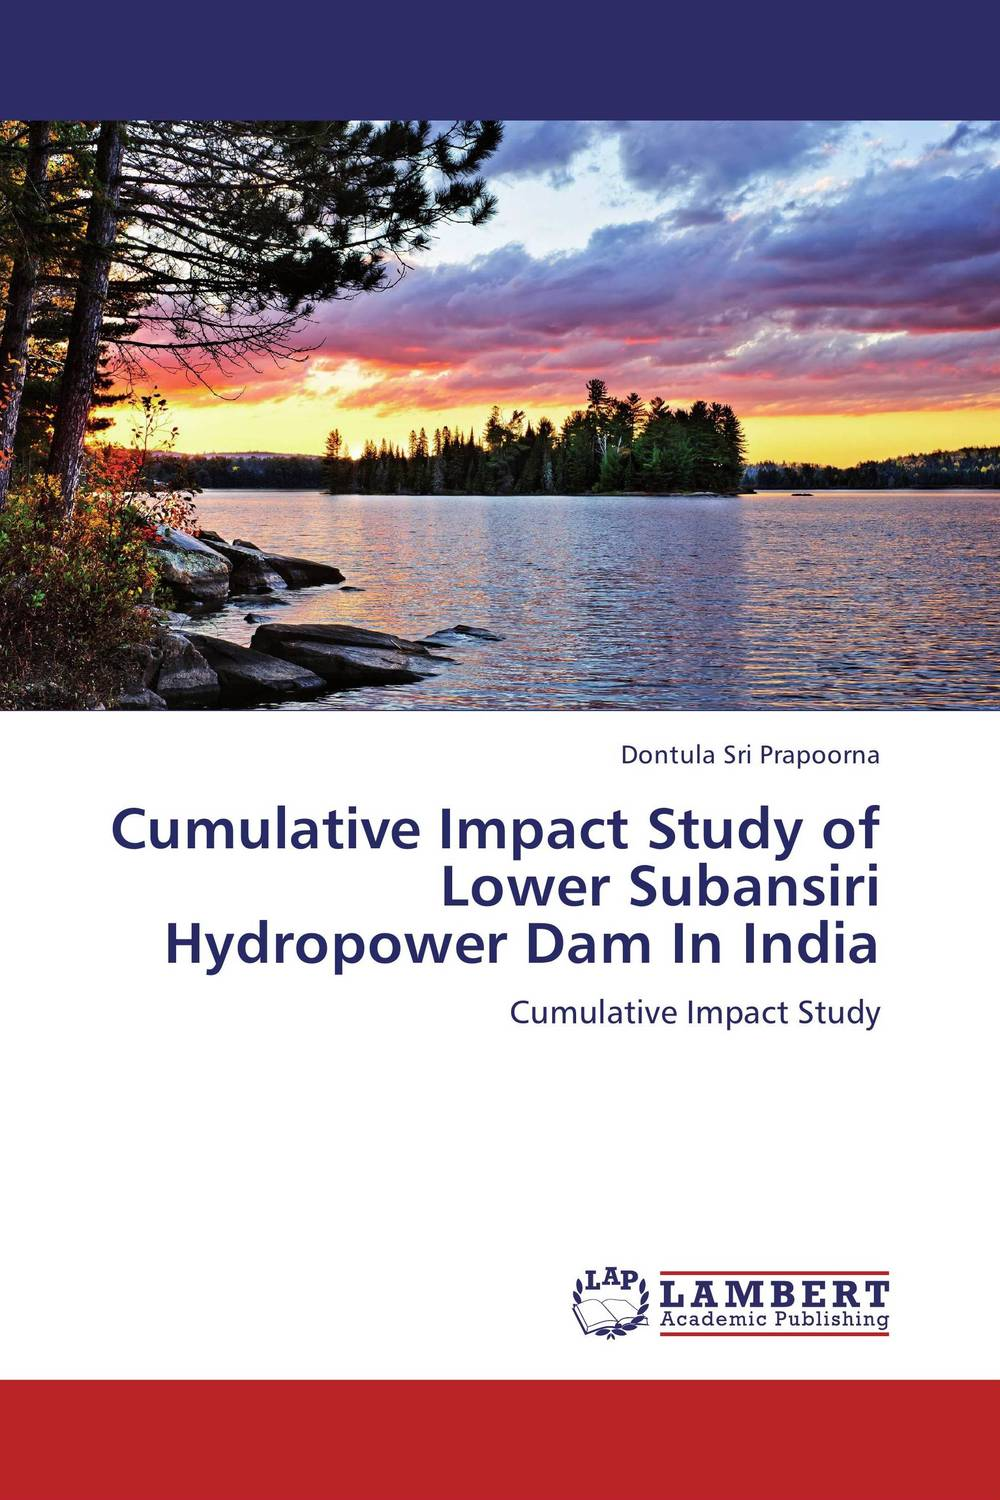 Cumulative Impact Study of Lower Subansiri Hydropower Dam In India effects of dams on river water quality